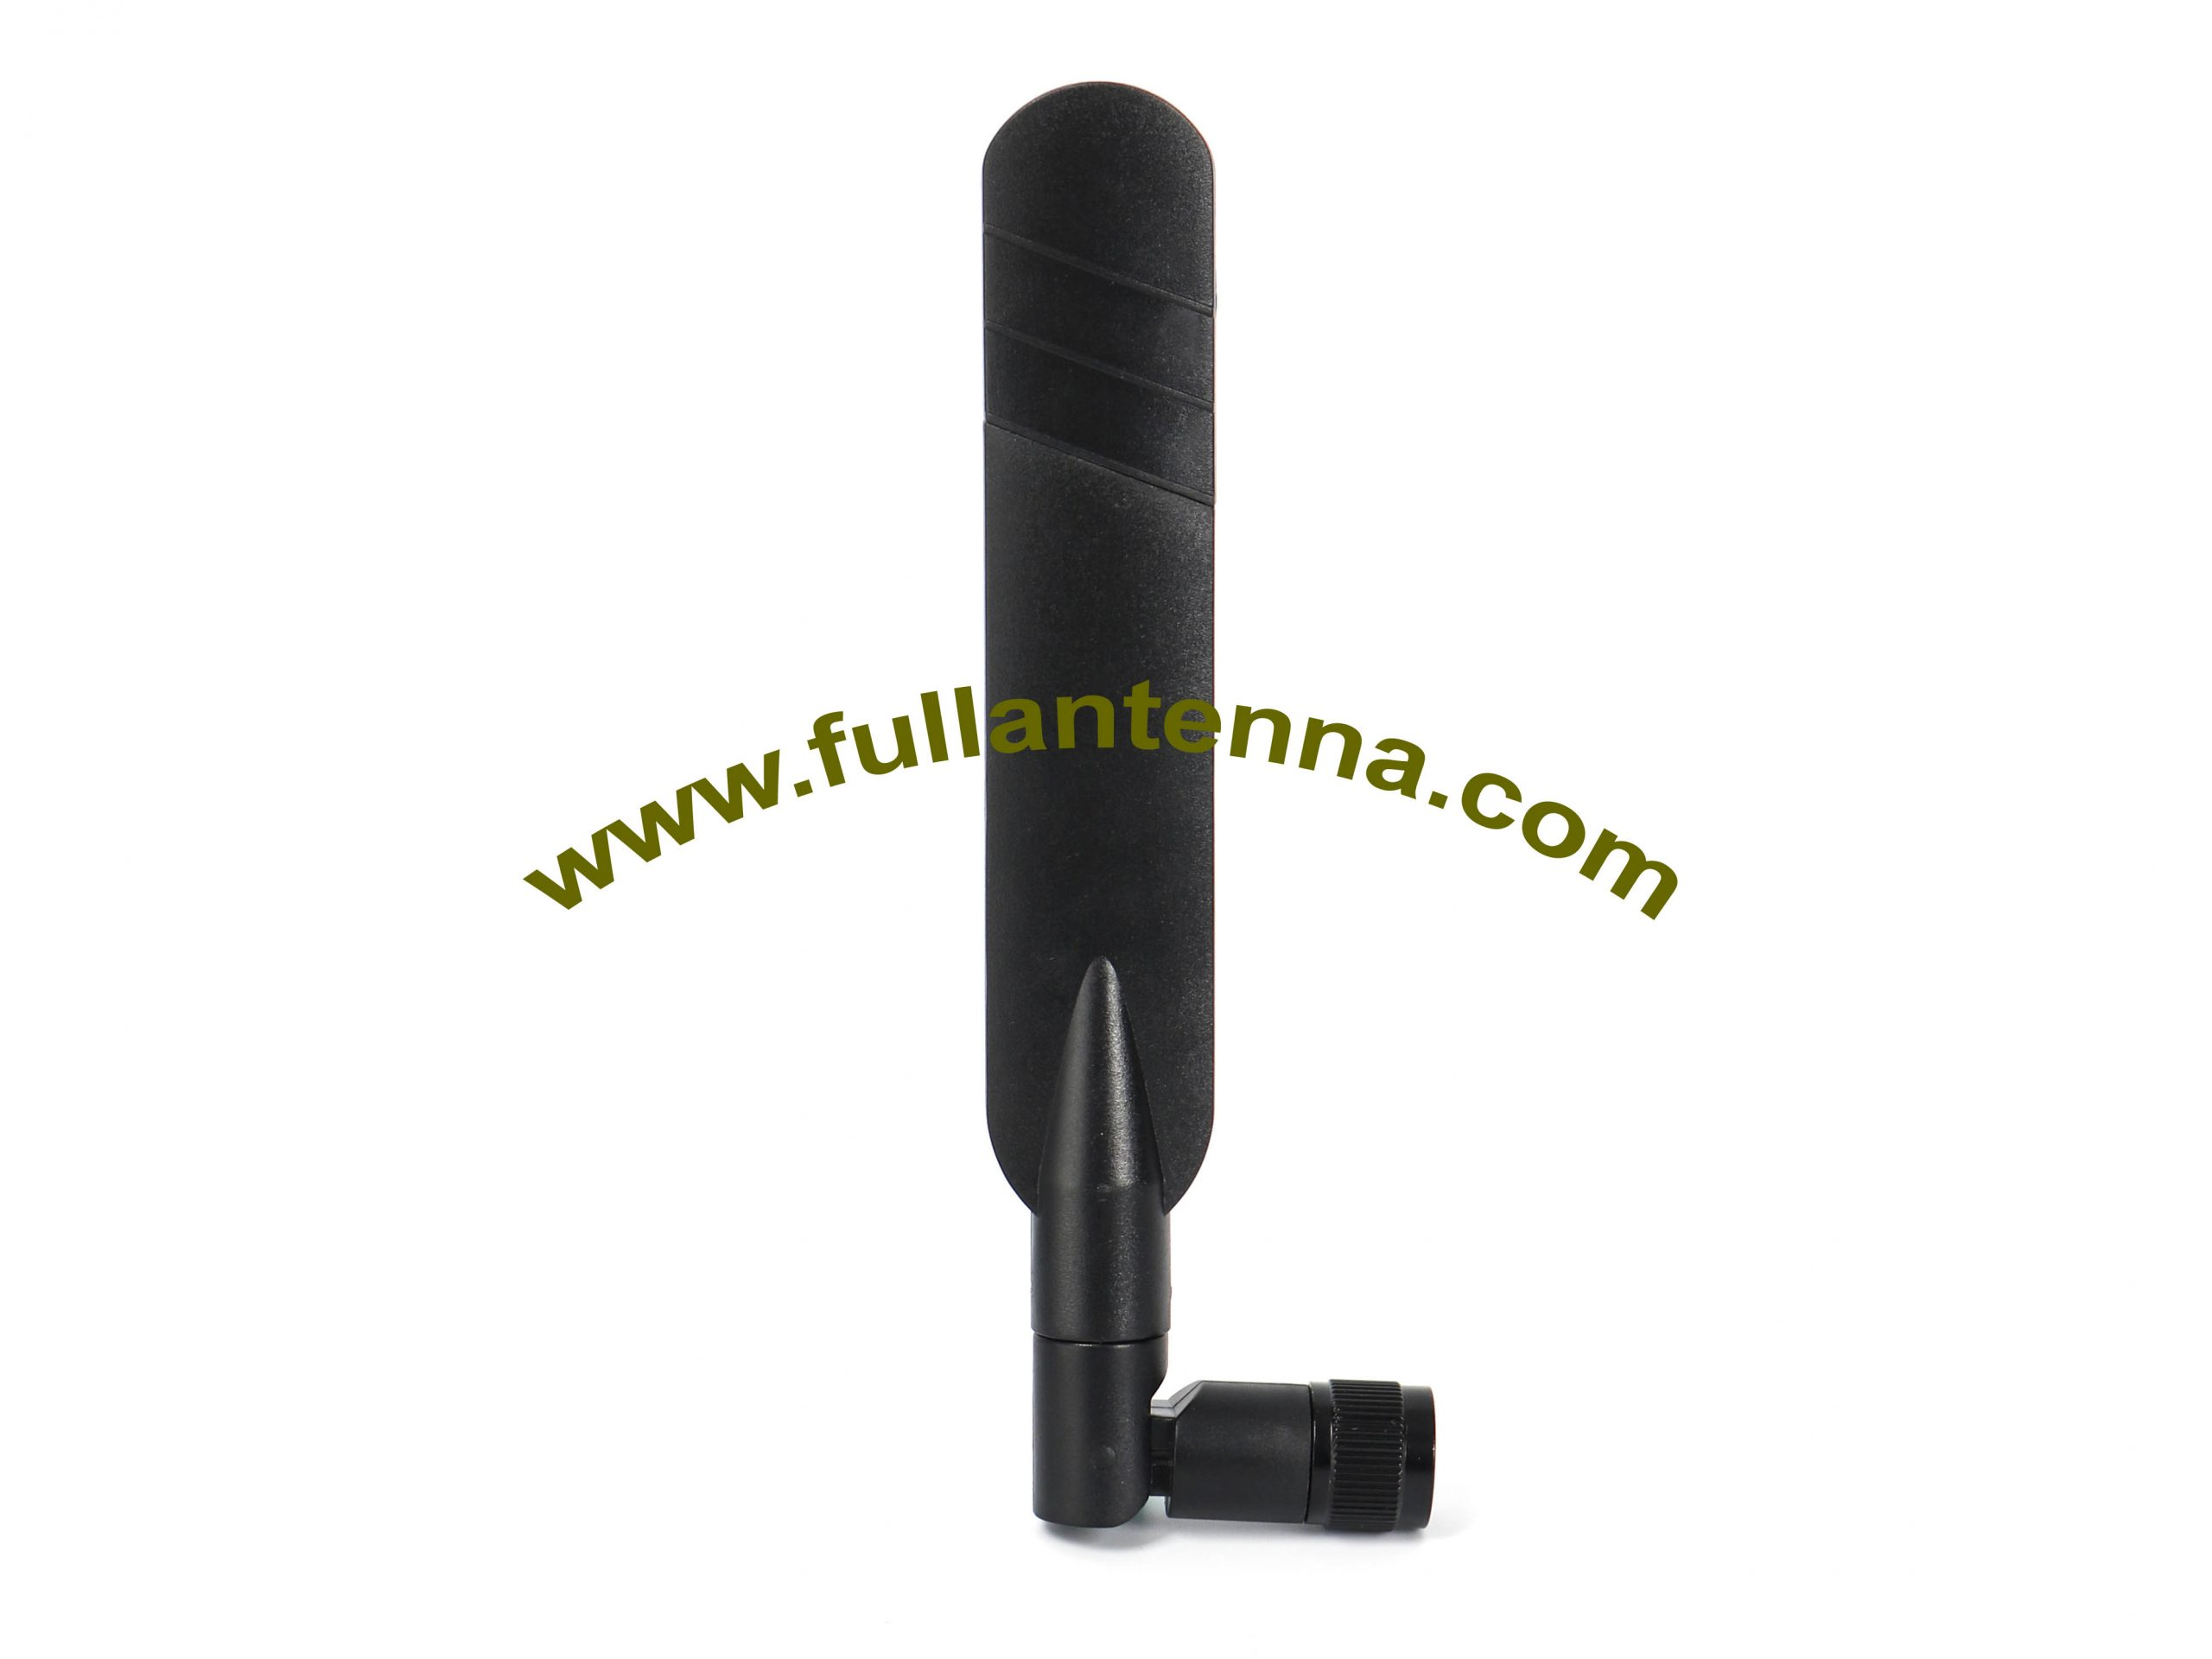 P/N:FA2400.0202,WiFi/2.4G Rubber Antenna,Rubber case Wifi2.4,5.8G  frequency